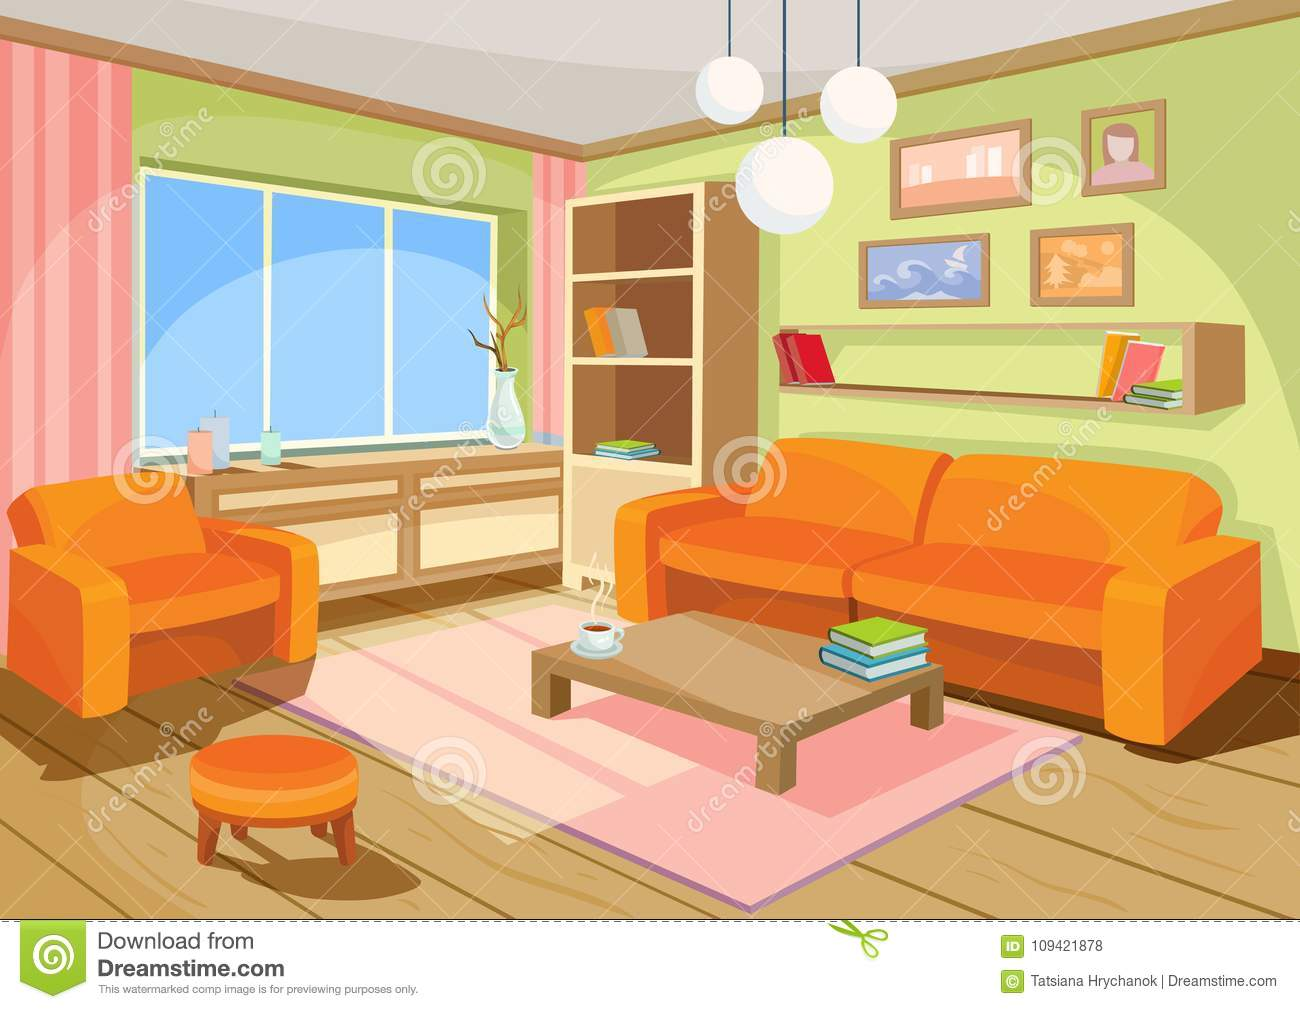 Groovy Illustration Of A Cozy Cartoon Interior Of A Home Room A Interior Design Ideas Gresisoteloinfo